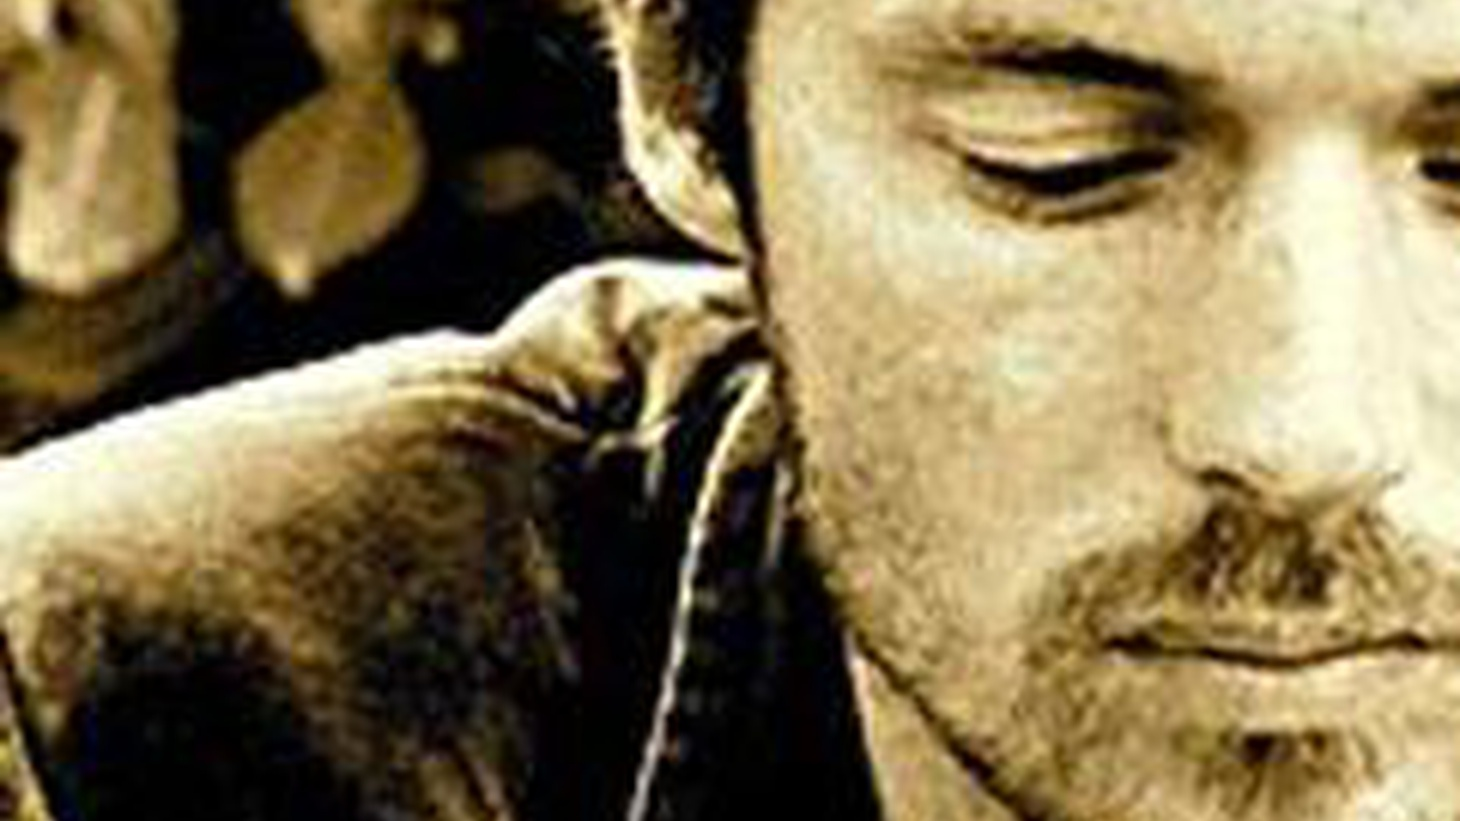 Talented Irish singer Damien Rice returns with a band this time, to perform new songs from, 9, on Morning Becomes Eclectic at 11:15am.